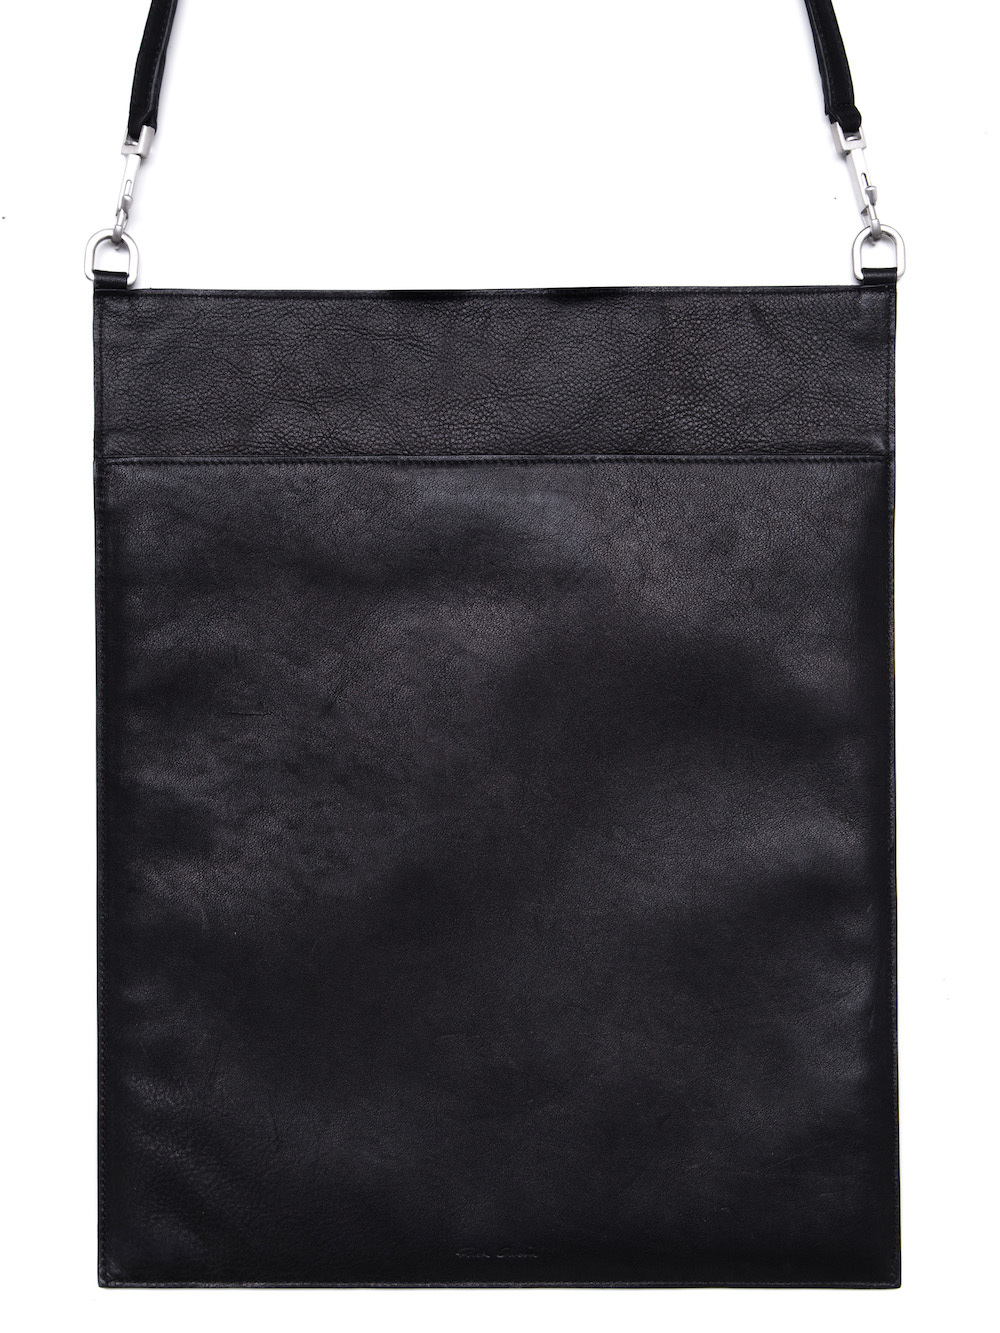 RICK OWENS FW18 SISYPHUS SECURITY POUCH IN BLACK